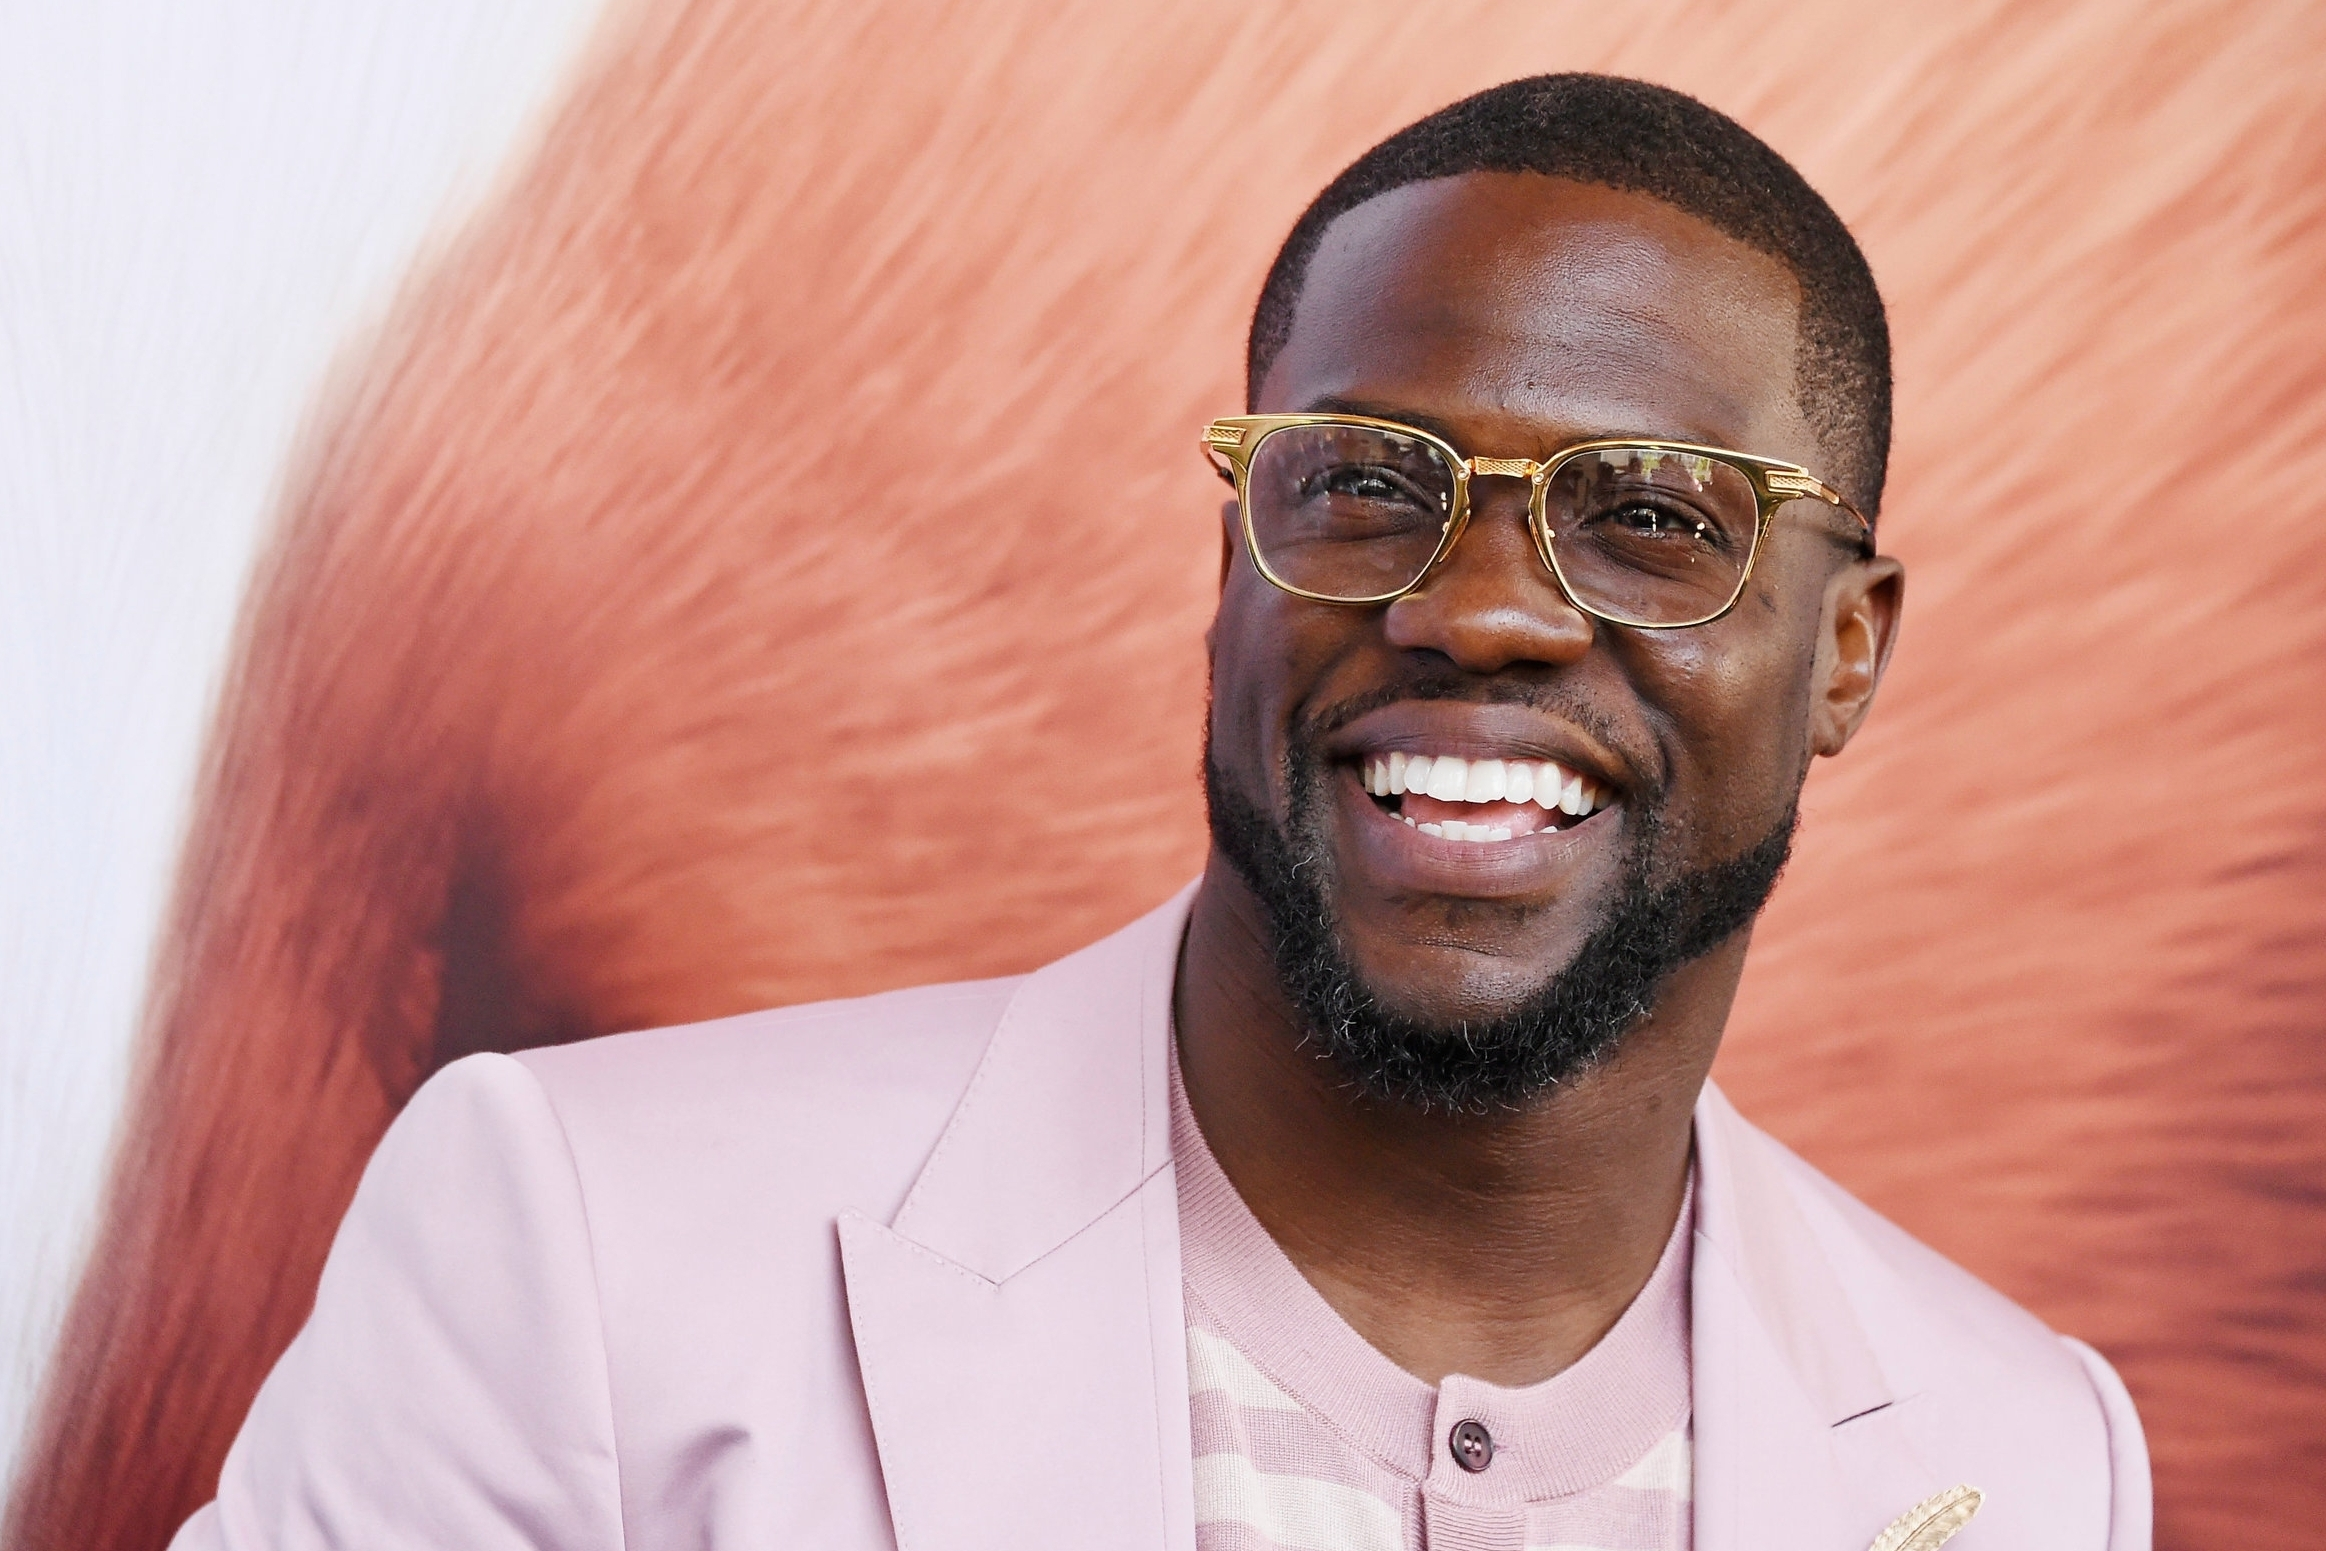 KEVIN HART - Actor / Comedian